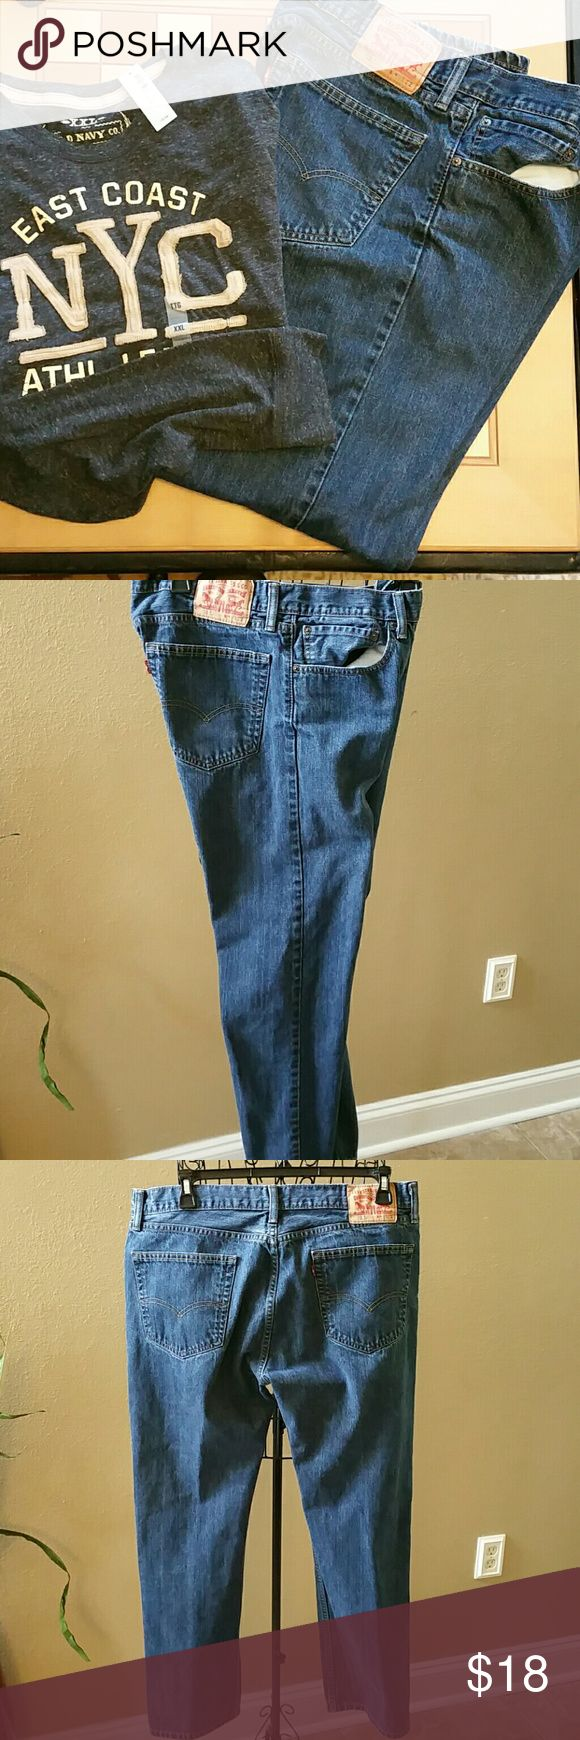 Levis 505 size 36/32 Five pocket 505 levis, straight leg button fly  jeans, size 36/32, great condition. Levi's Jeans Straight